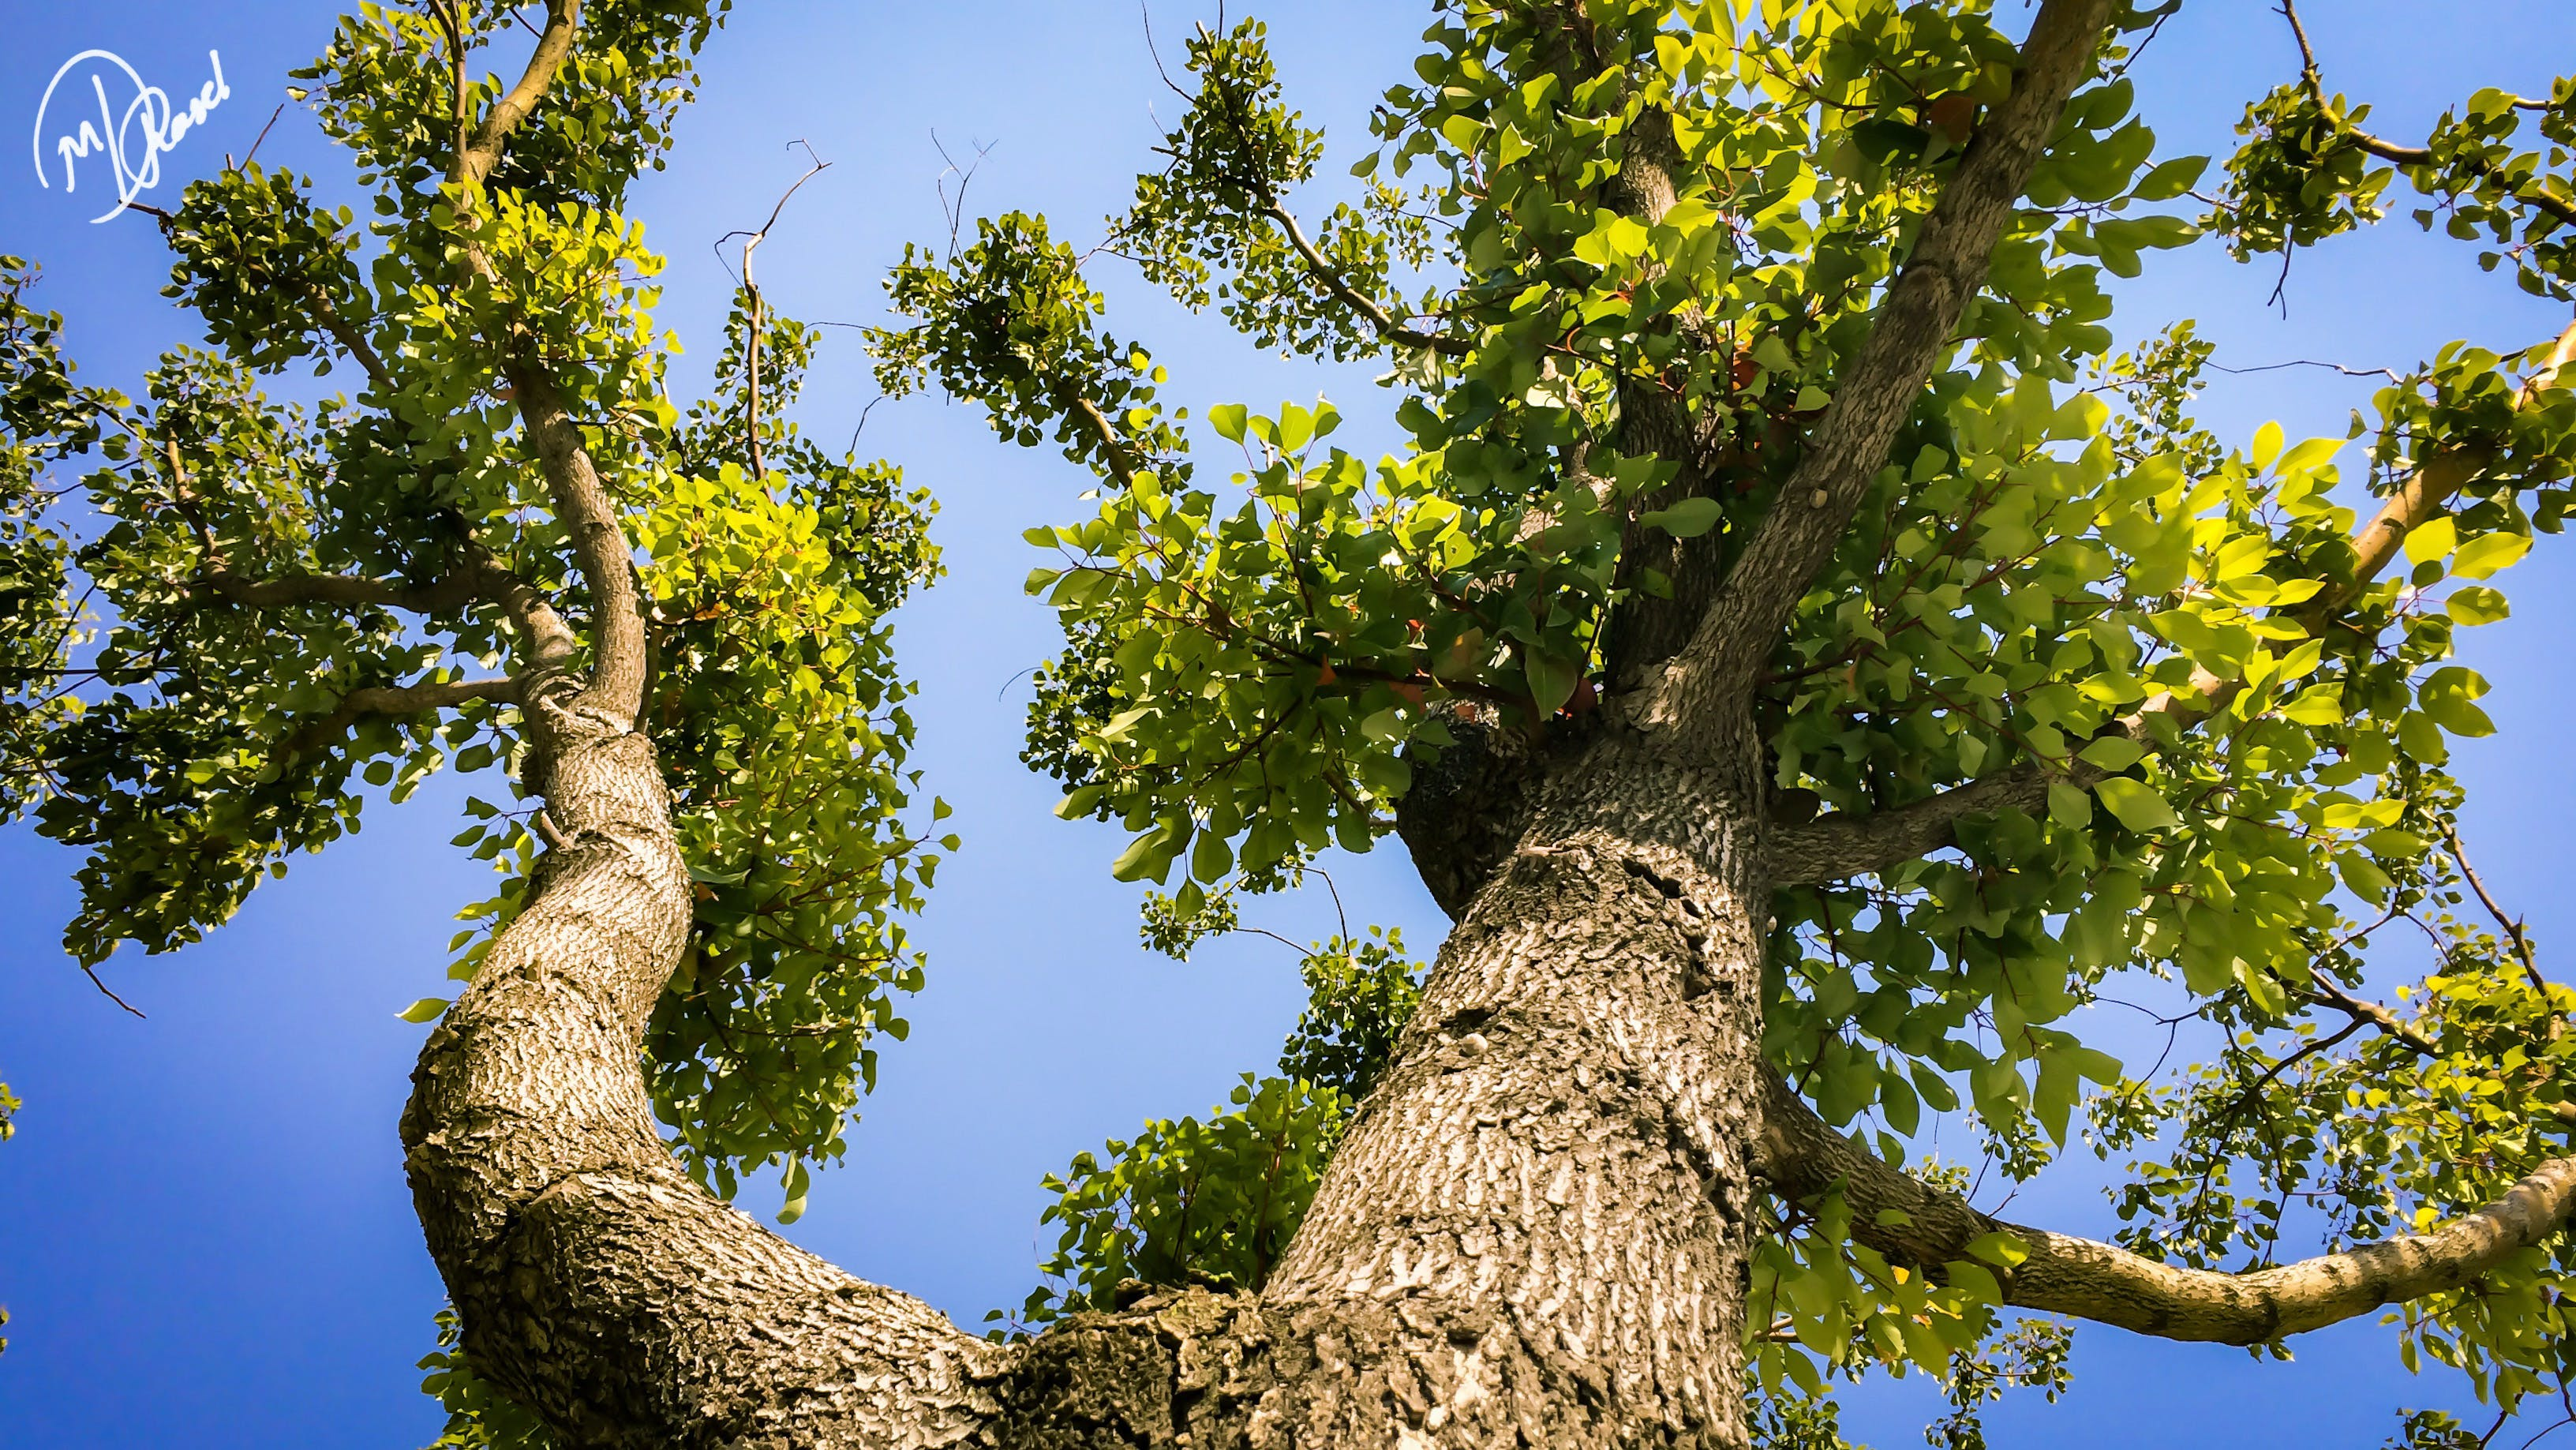 Free stock photo of trees, branches, tree, green